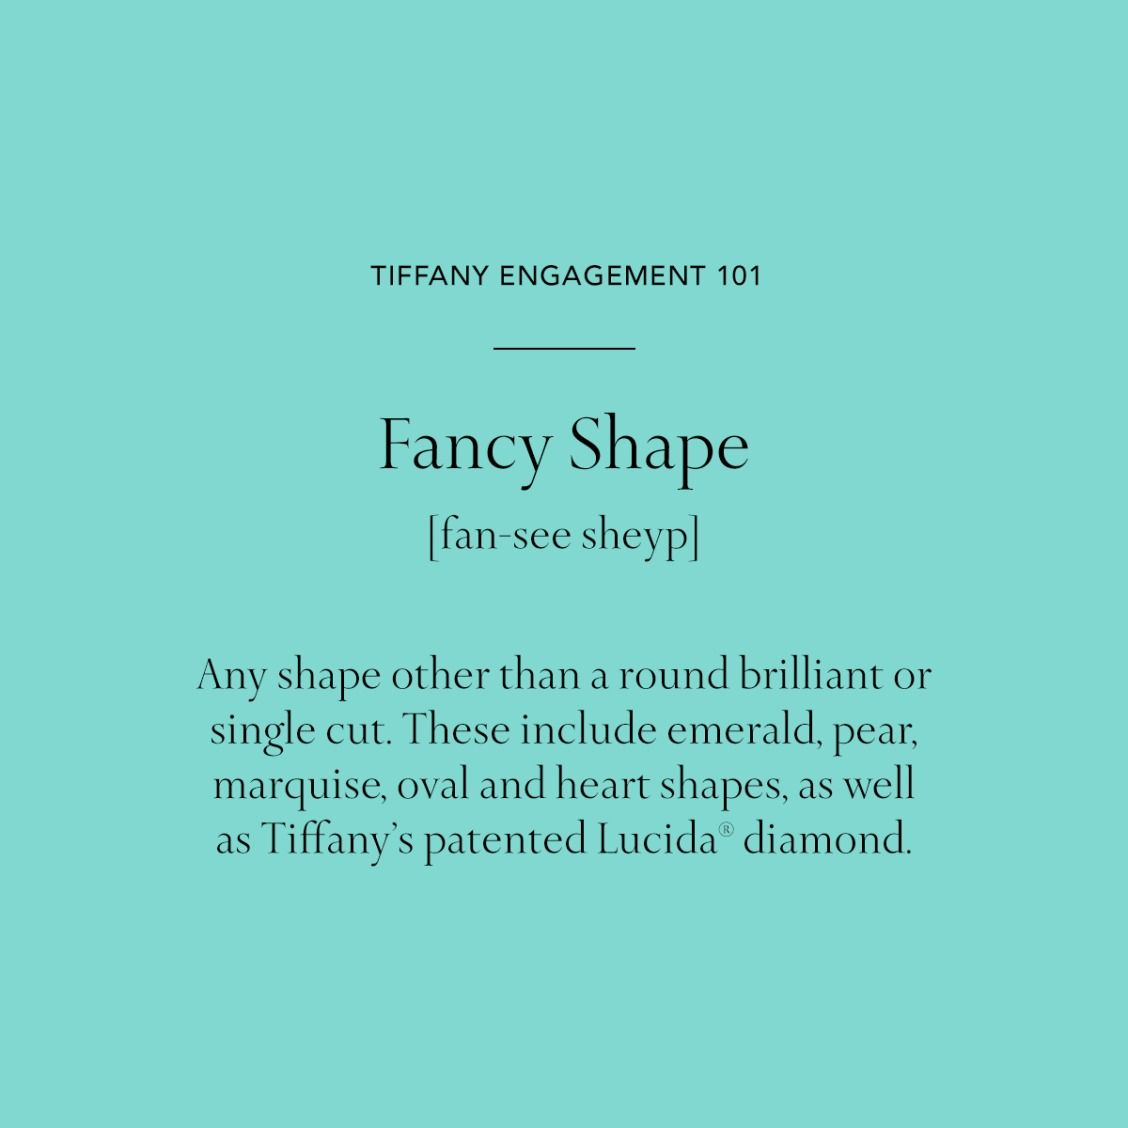 Tiffany Engagement Rings 101 Fancy Shape: Any shape other than a round brilliant or single cut. These include emerald, pear, marquise, oval and heart shapes, as well Tiffany's patented Lucida® diamond.